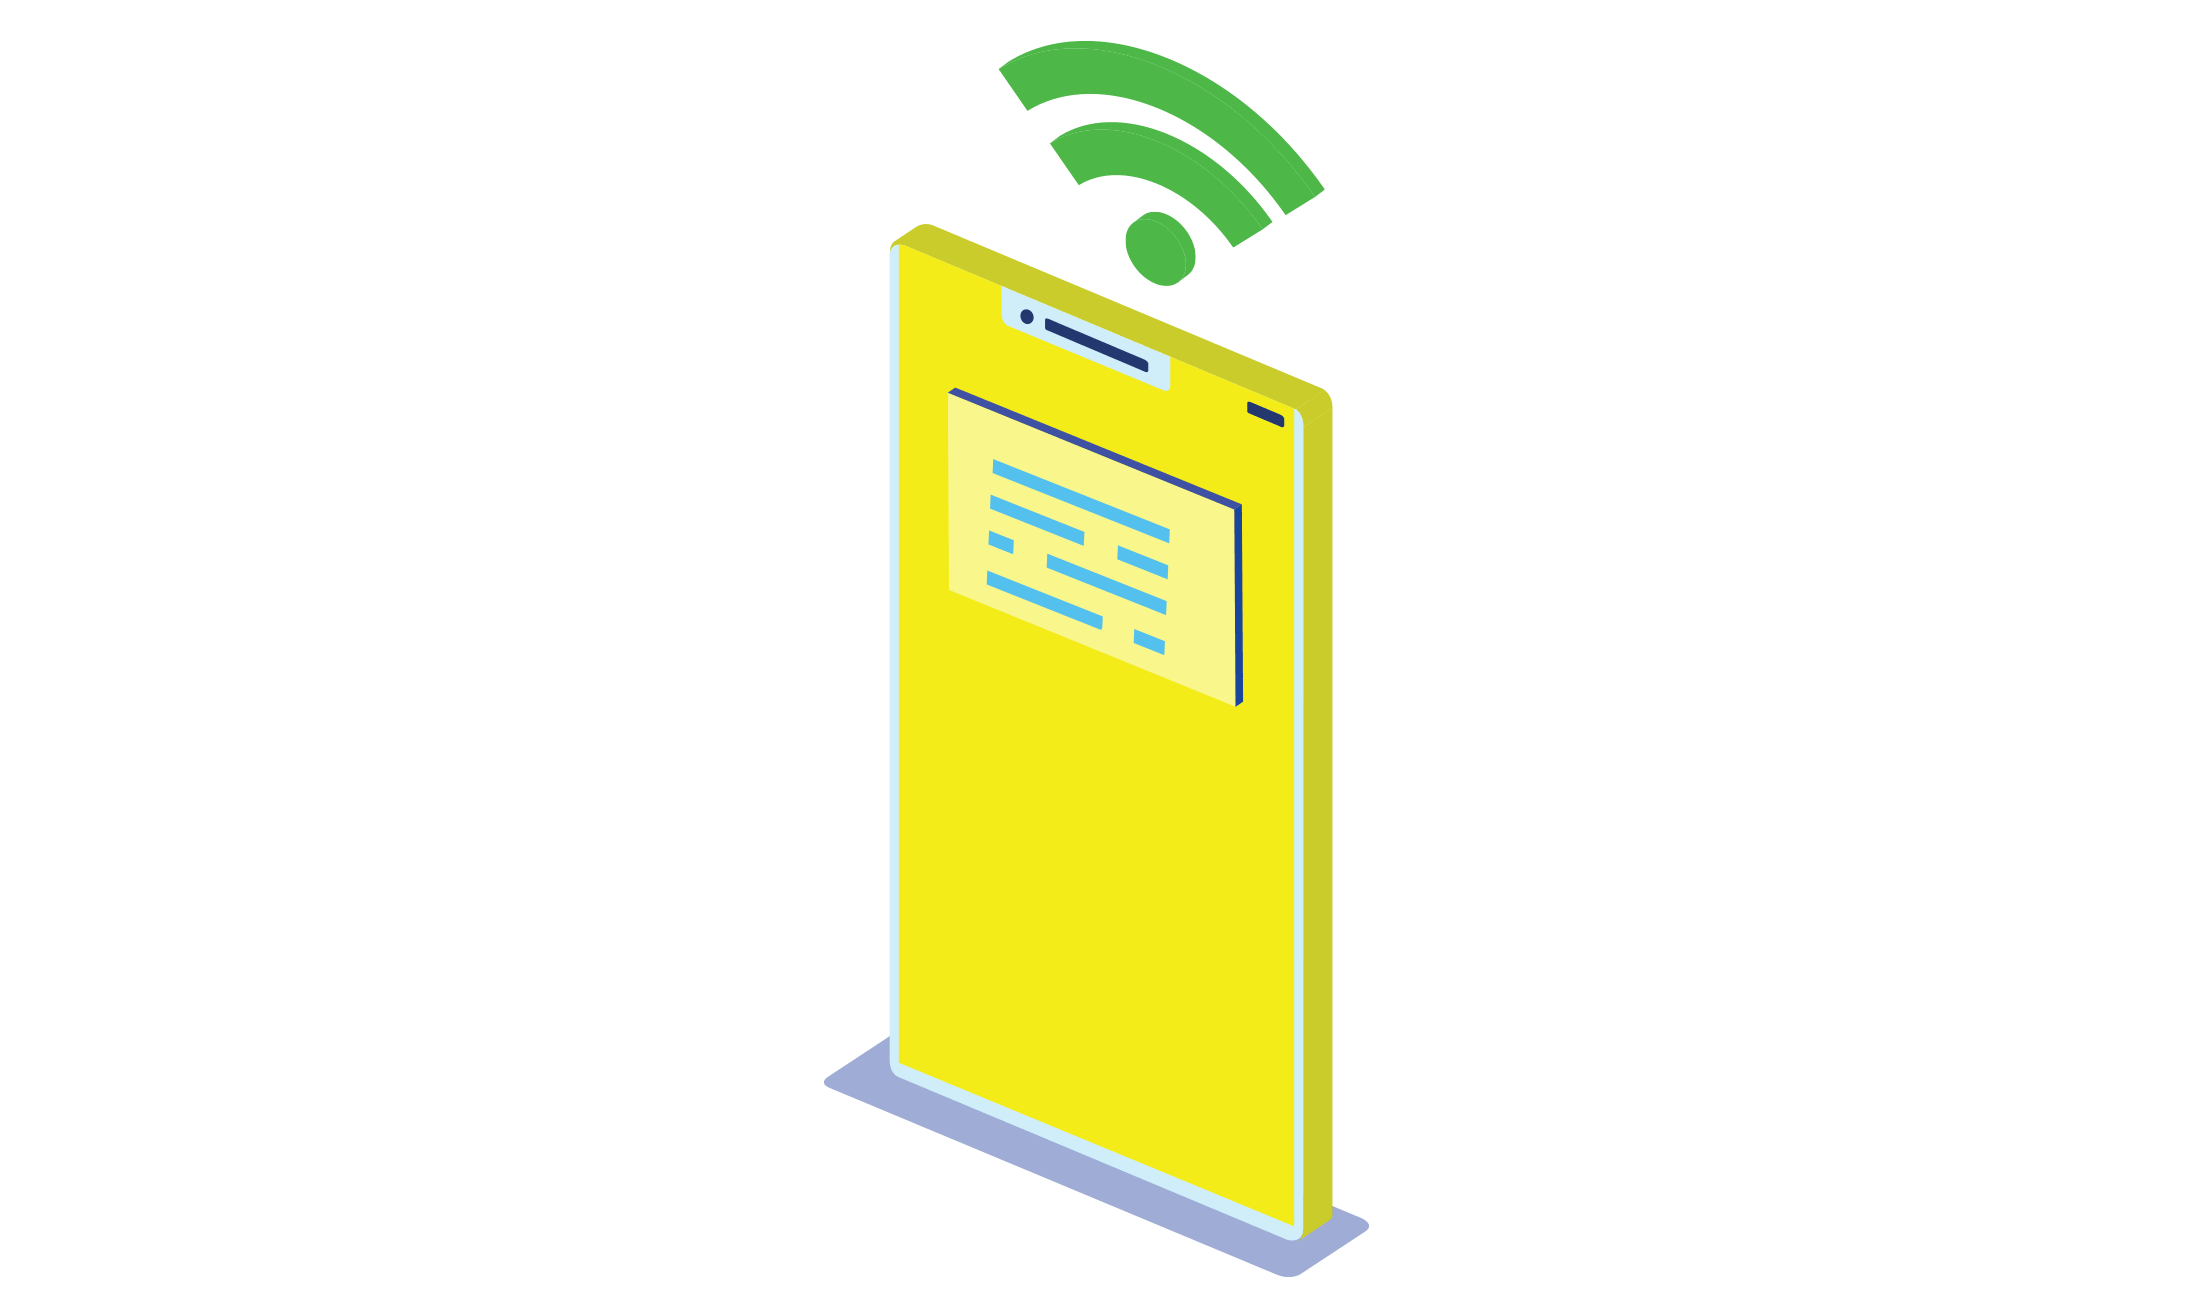 Spy Through Wi-Fi Router App & - Track Employees Whereabouts in Seconds